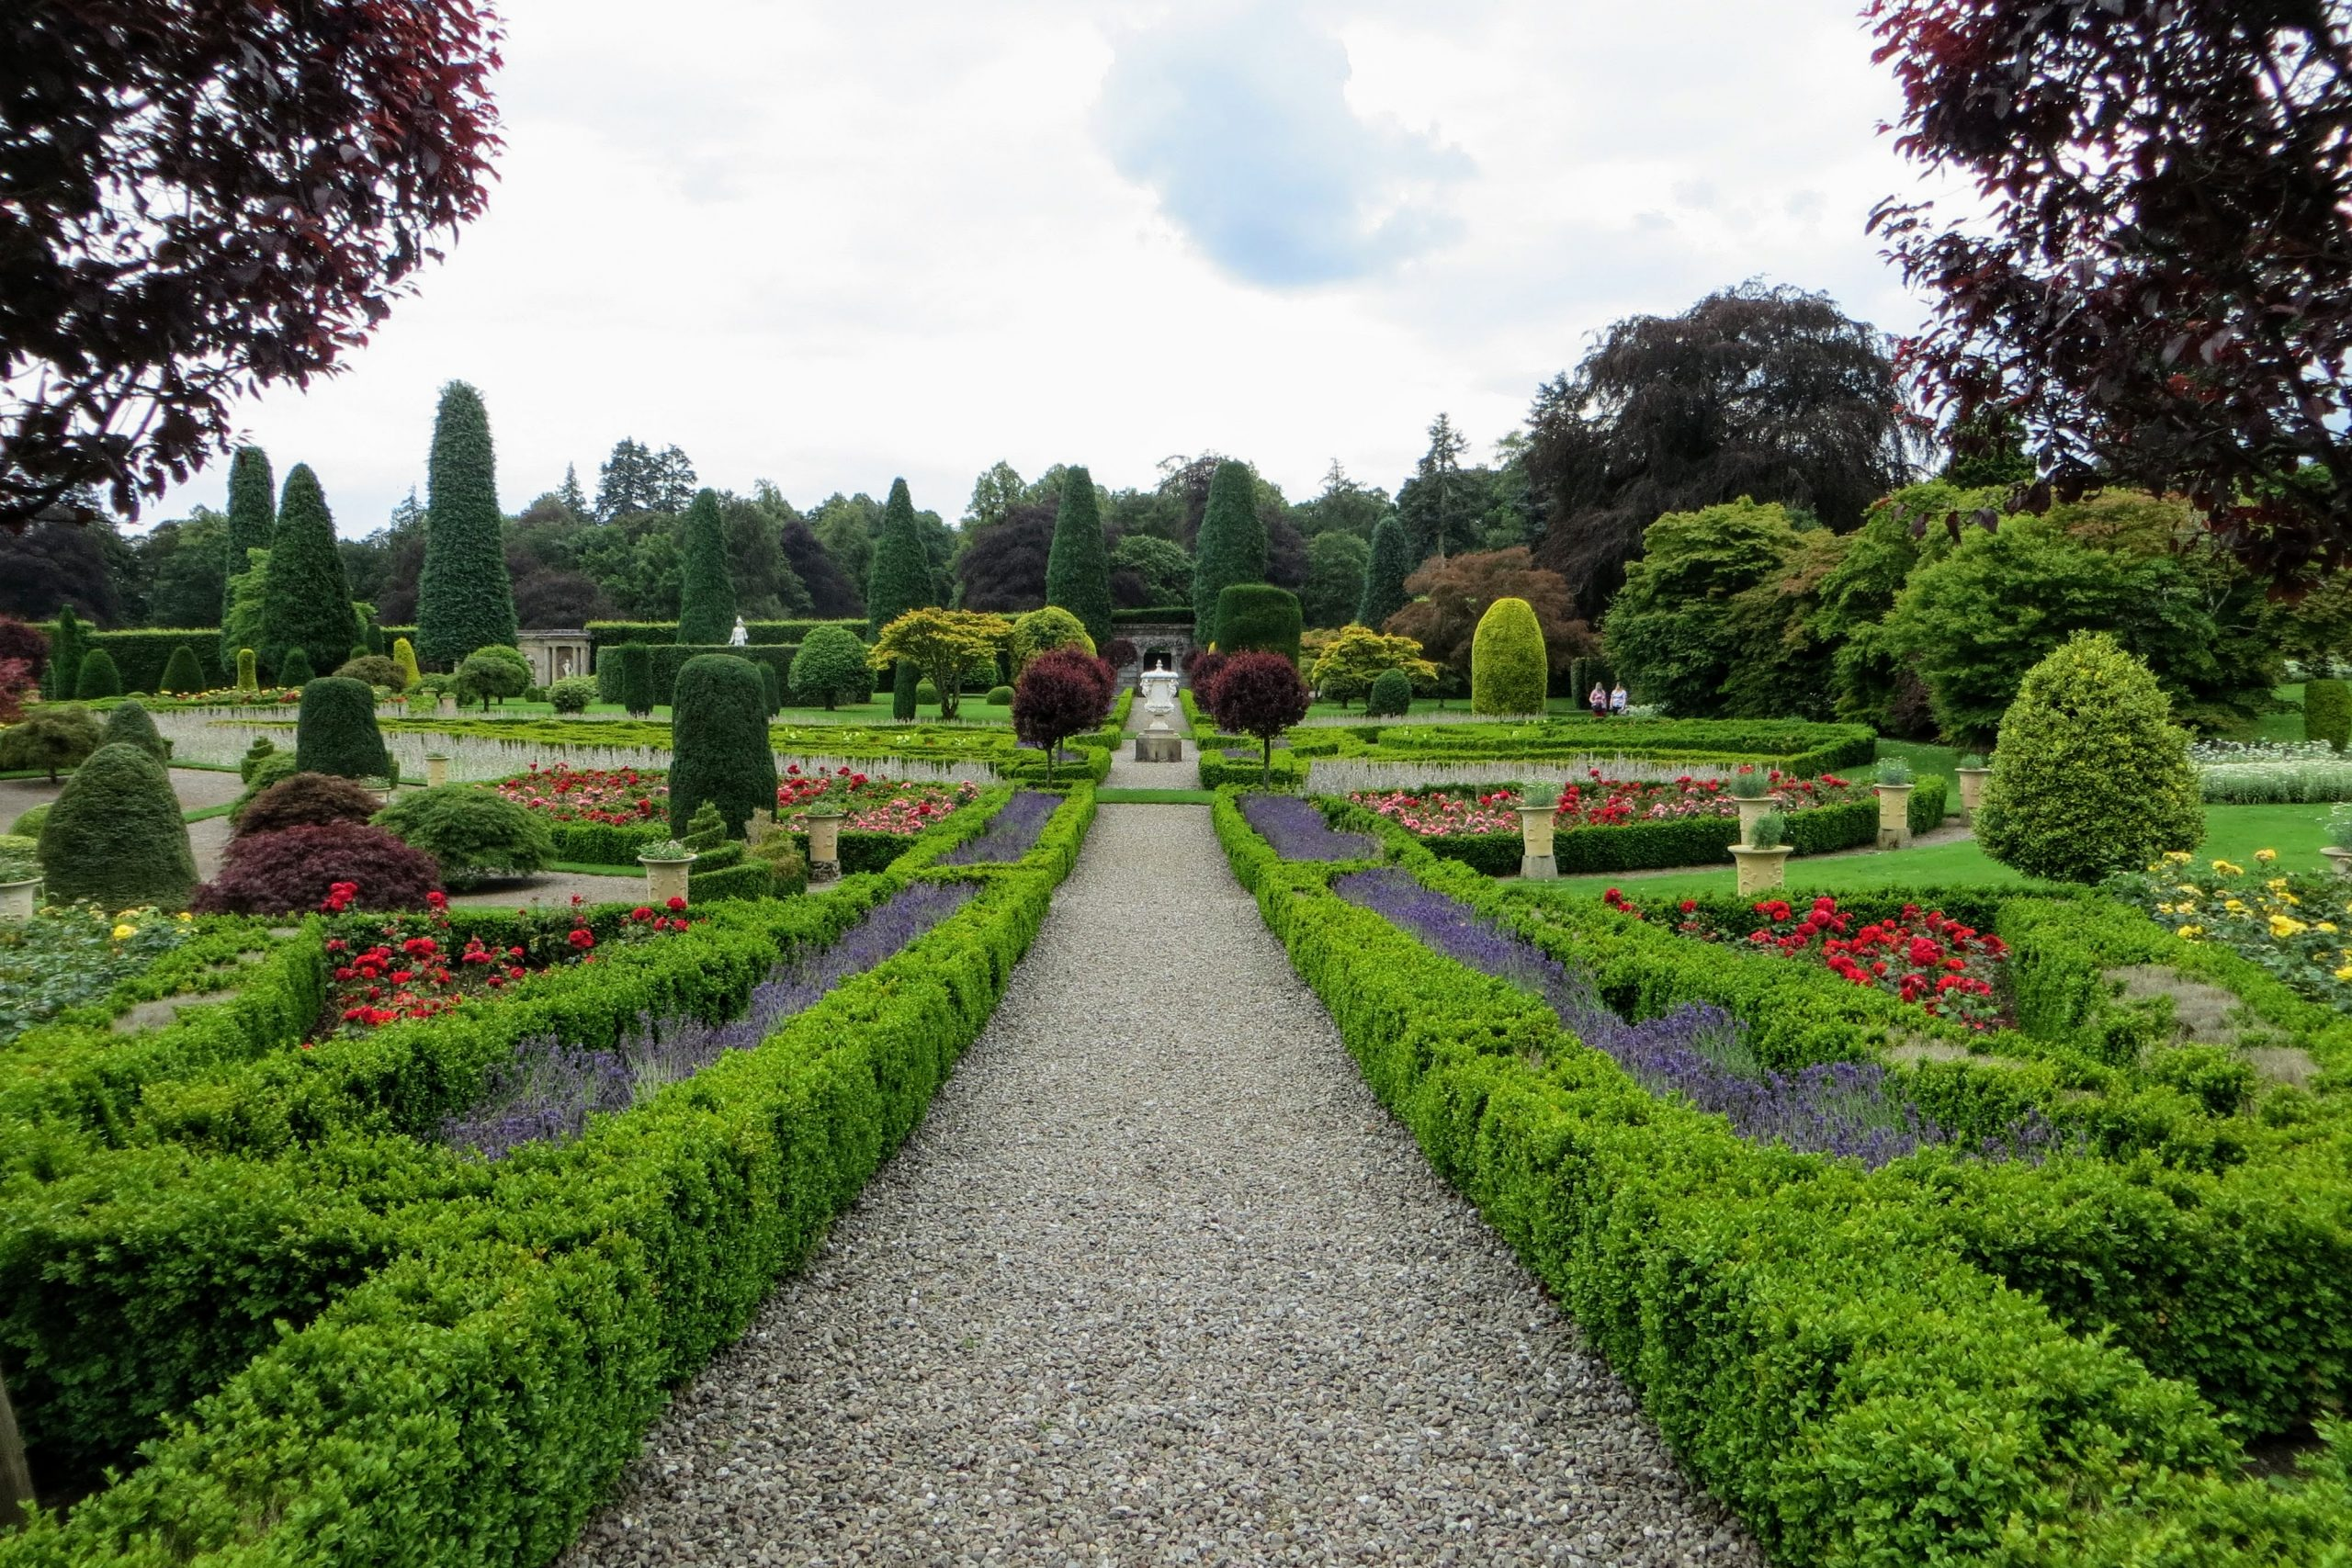 Themed Tours of Scotland - Drummond Castle Gardens